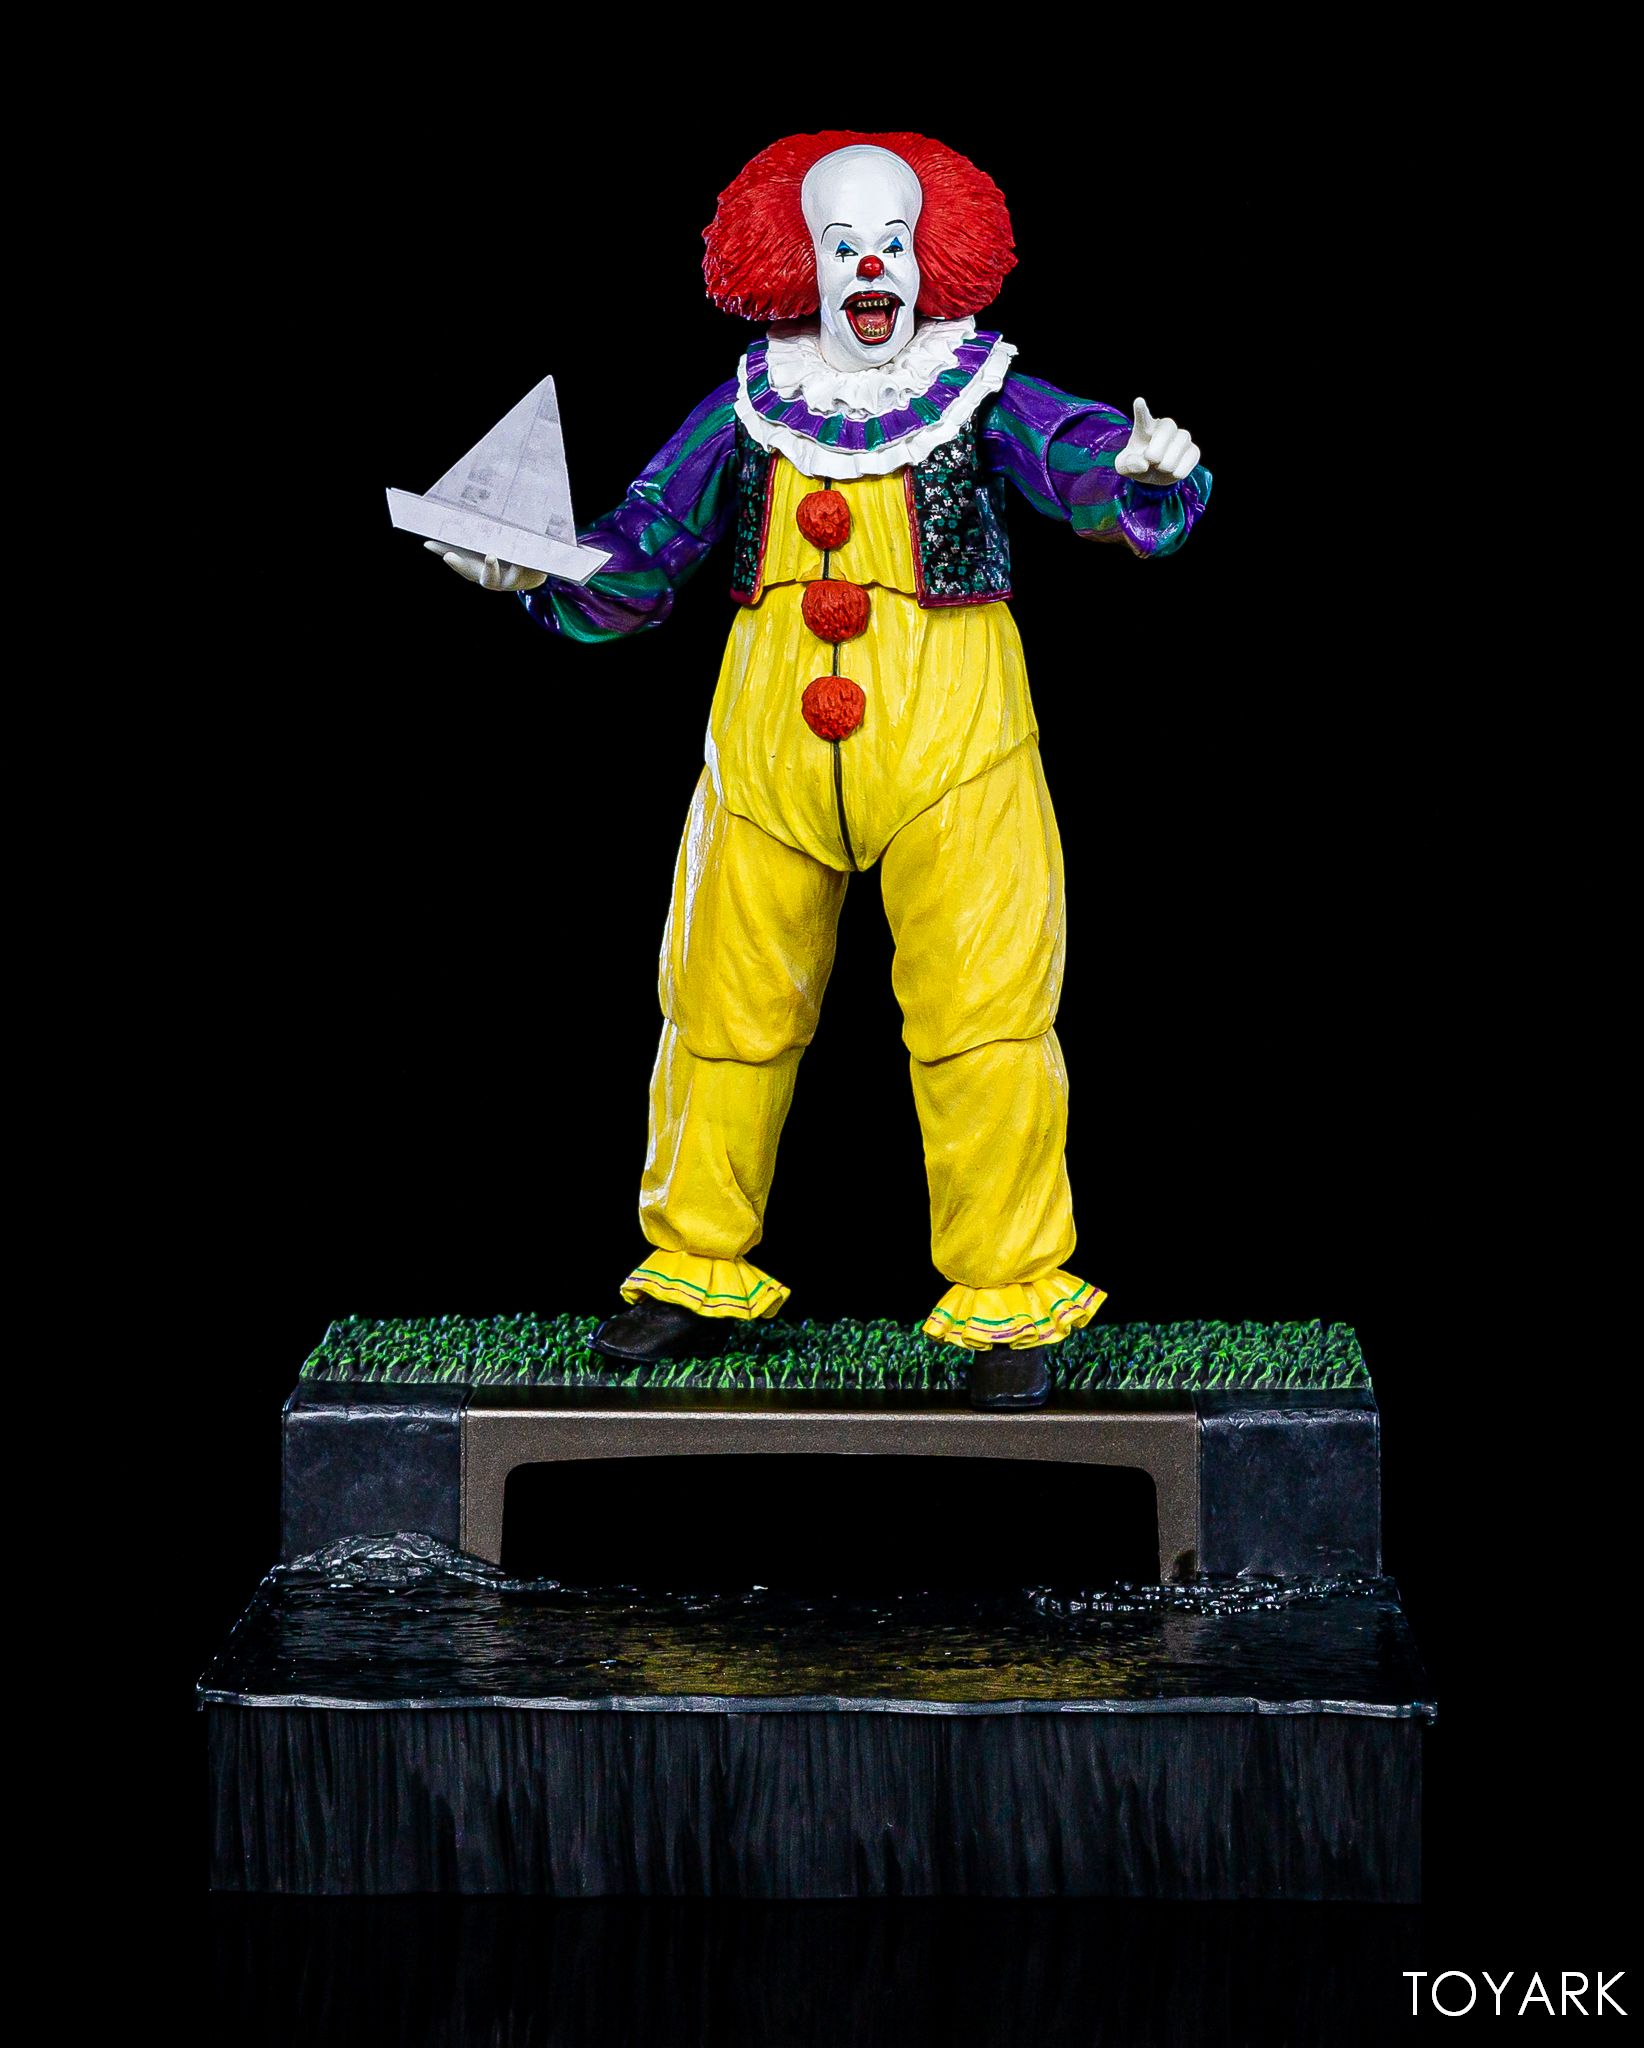 https://news.toyark.com/wp-content/uploads/sites/4/2019/05/NECA-Pennywise-Accessory-Set-049.jpg